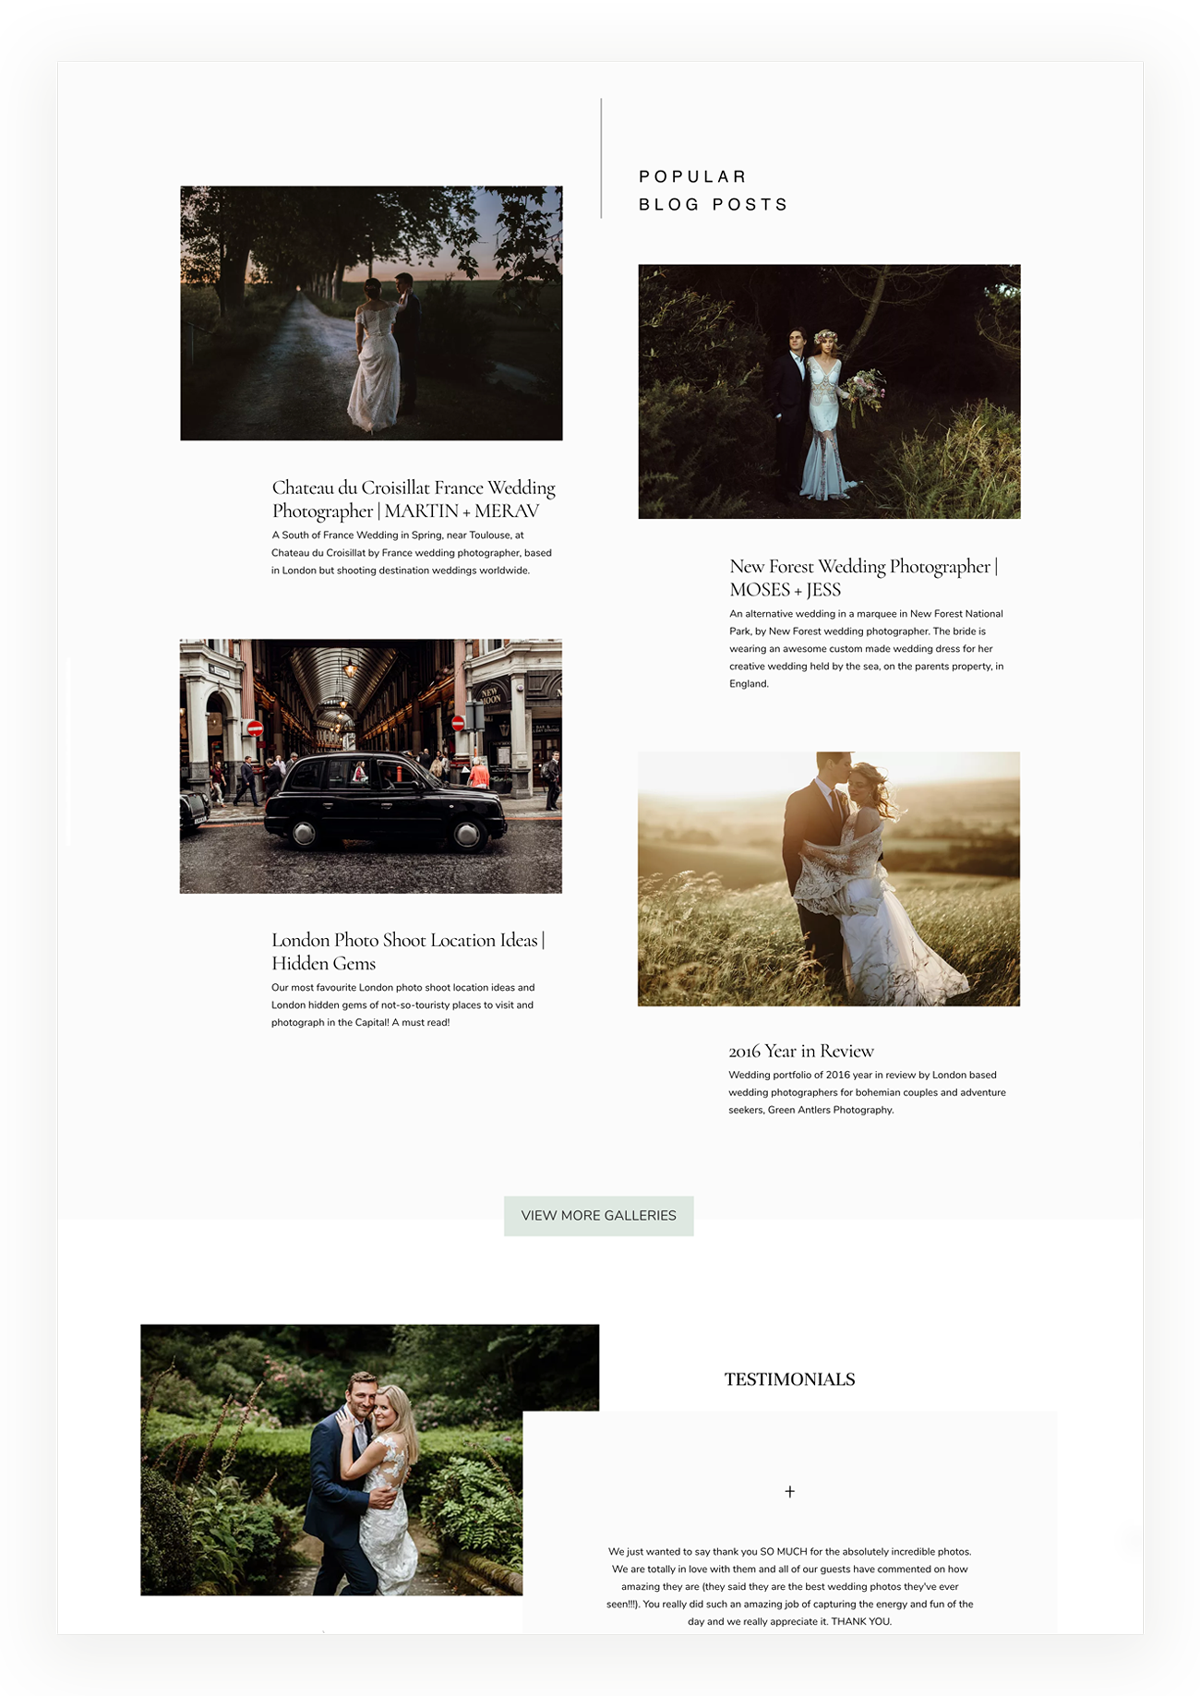 green-antlers-wedding-photography-website,-flothemes,-wordpress,-osaka-theme-design,-portfolio-layout